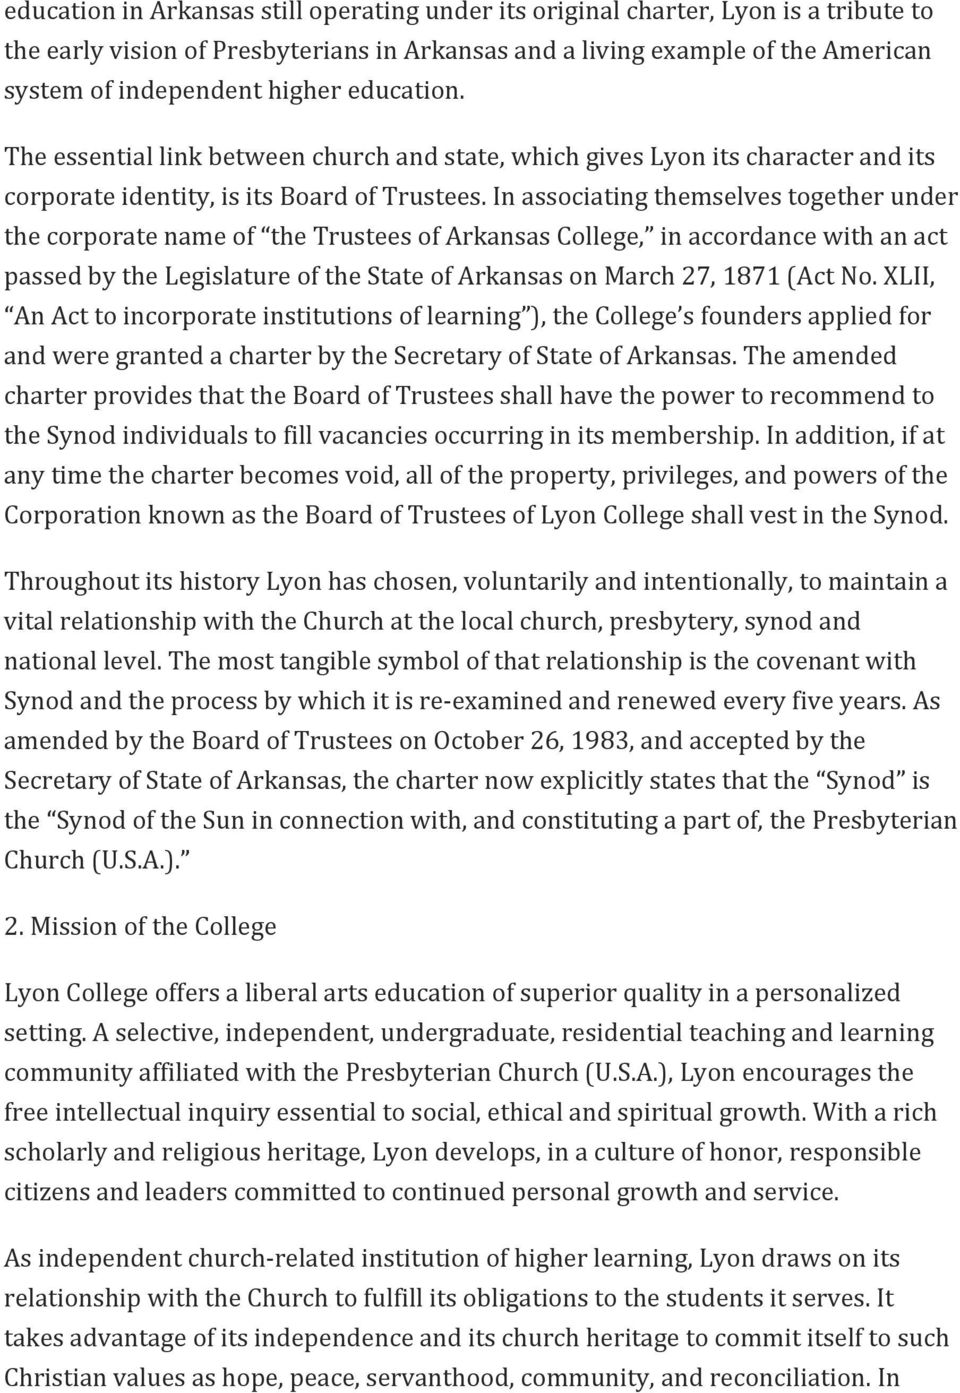 In associating themselves together under the corporate name of the Trustees of Arkansas College, in accordance with an act passed by the Legislature of the State of Arkansas on March 27, 1871 (Act No.